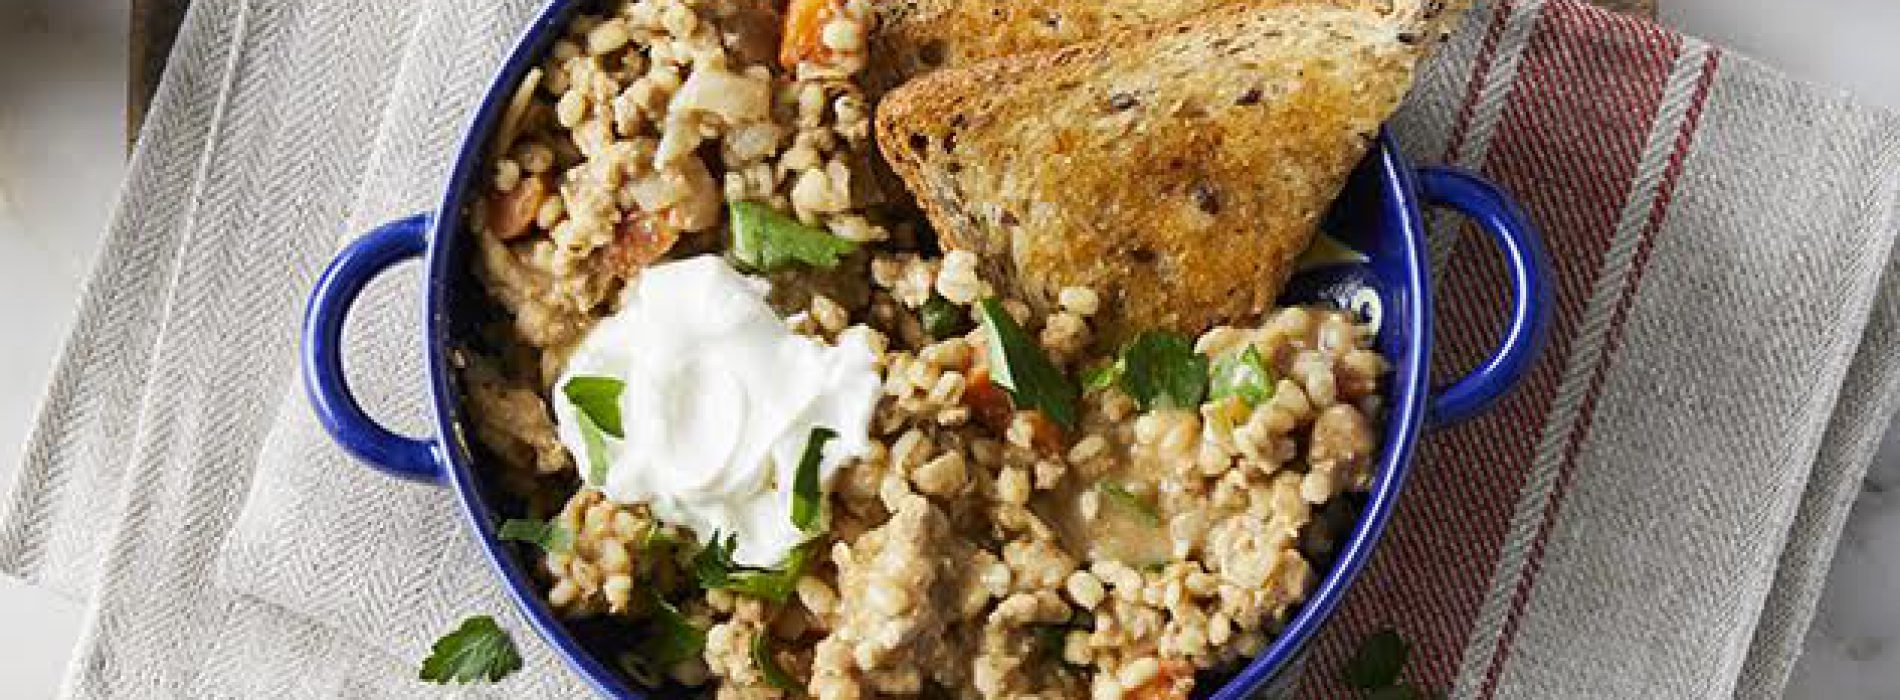 Turkey, Barley and White Bean Chili